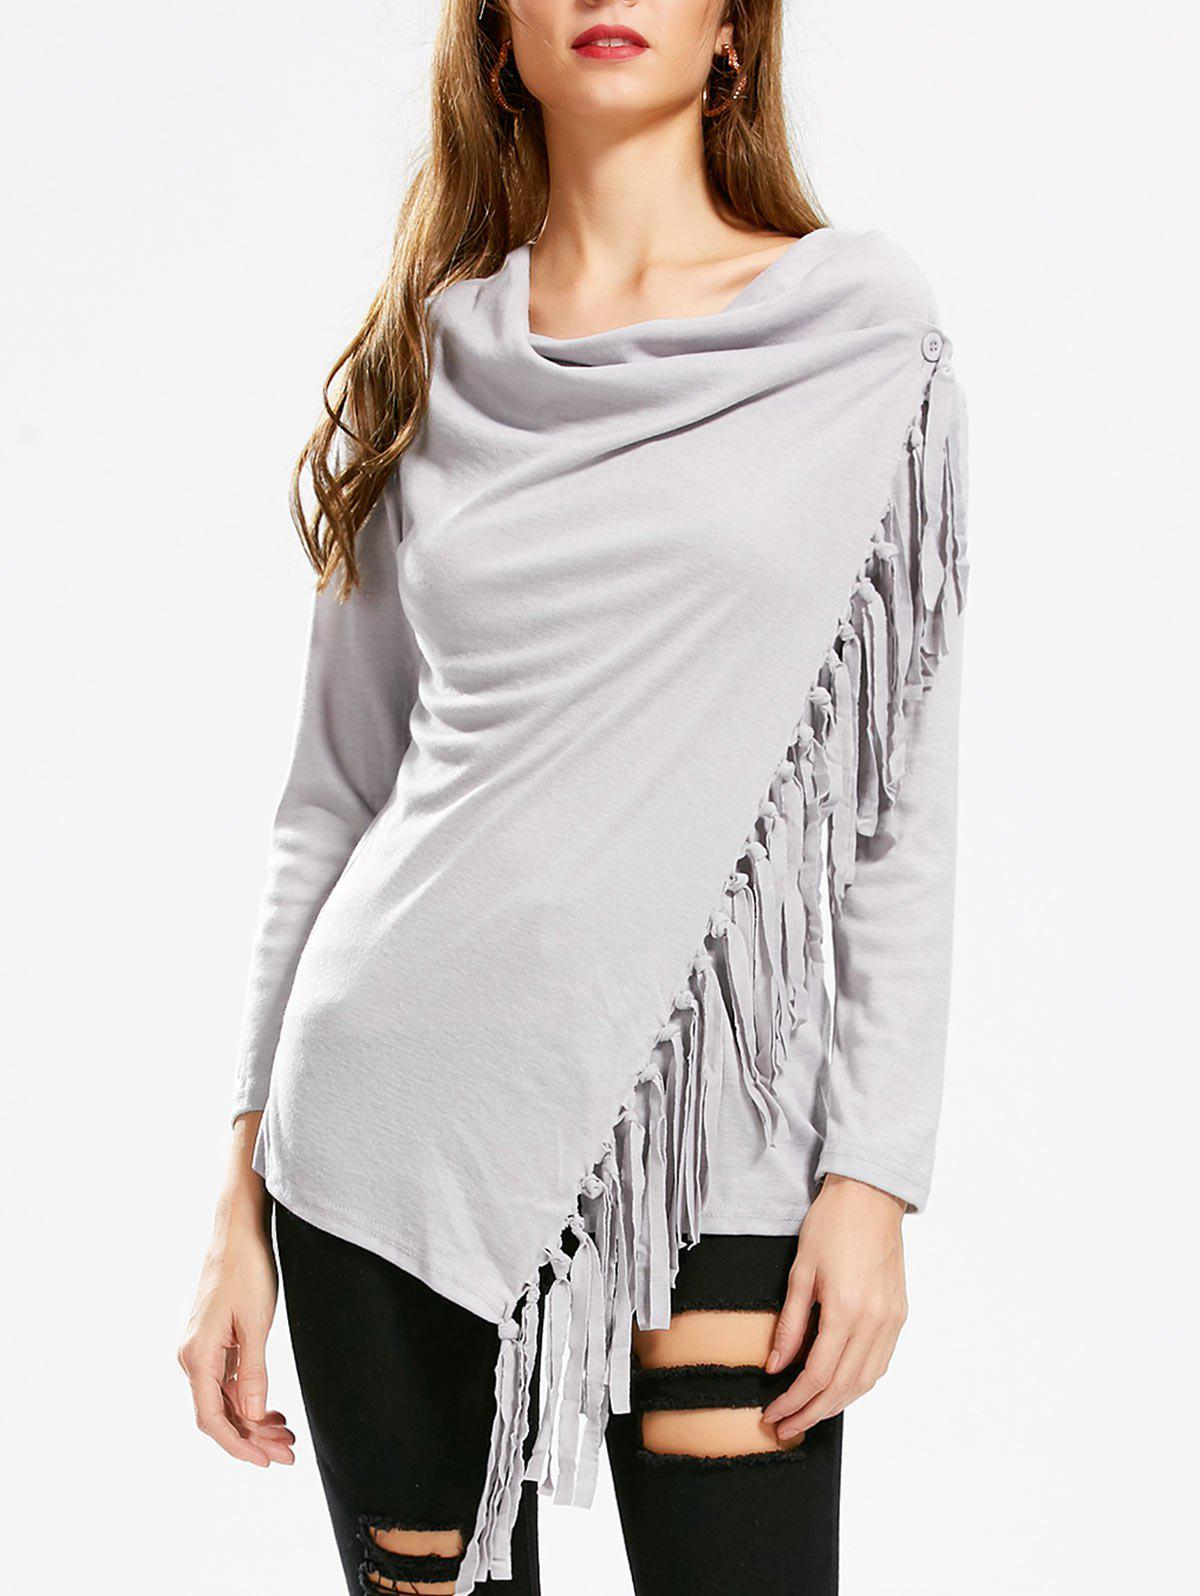 Tassel Asymmetric Long Sleeve TopWOMEN<br><br>Size: XL; Color: GRAY; Material: Polyester; Sleeve Length: Full; Collar: Cowl Neck; Style: Fashion; Embellishment: Tassel; Pattern Type: Solid; Weight: 0.3300kg; Package Contents: 1 x T-Shirt;